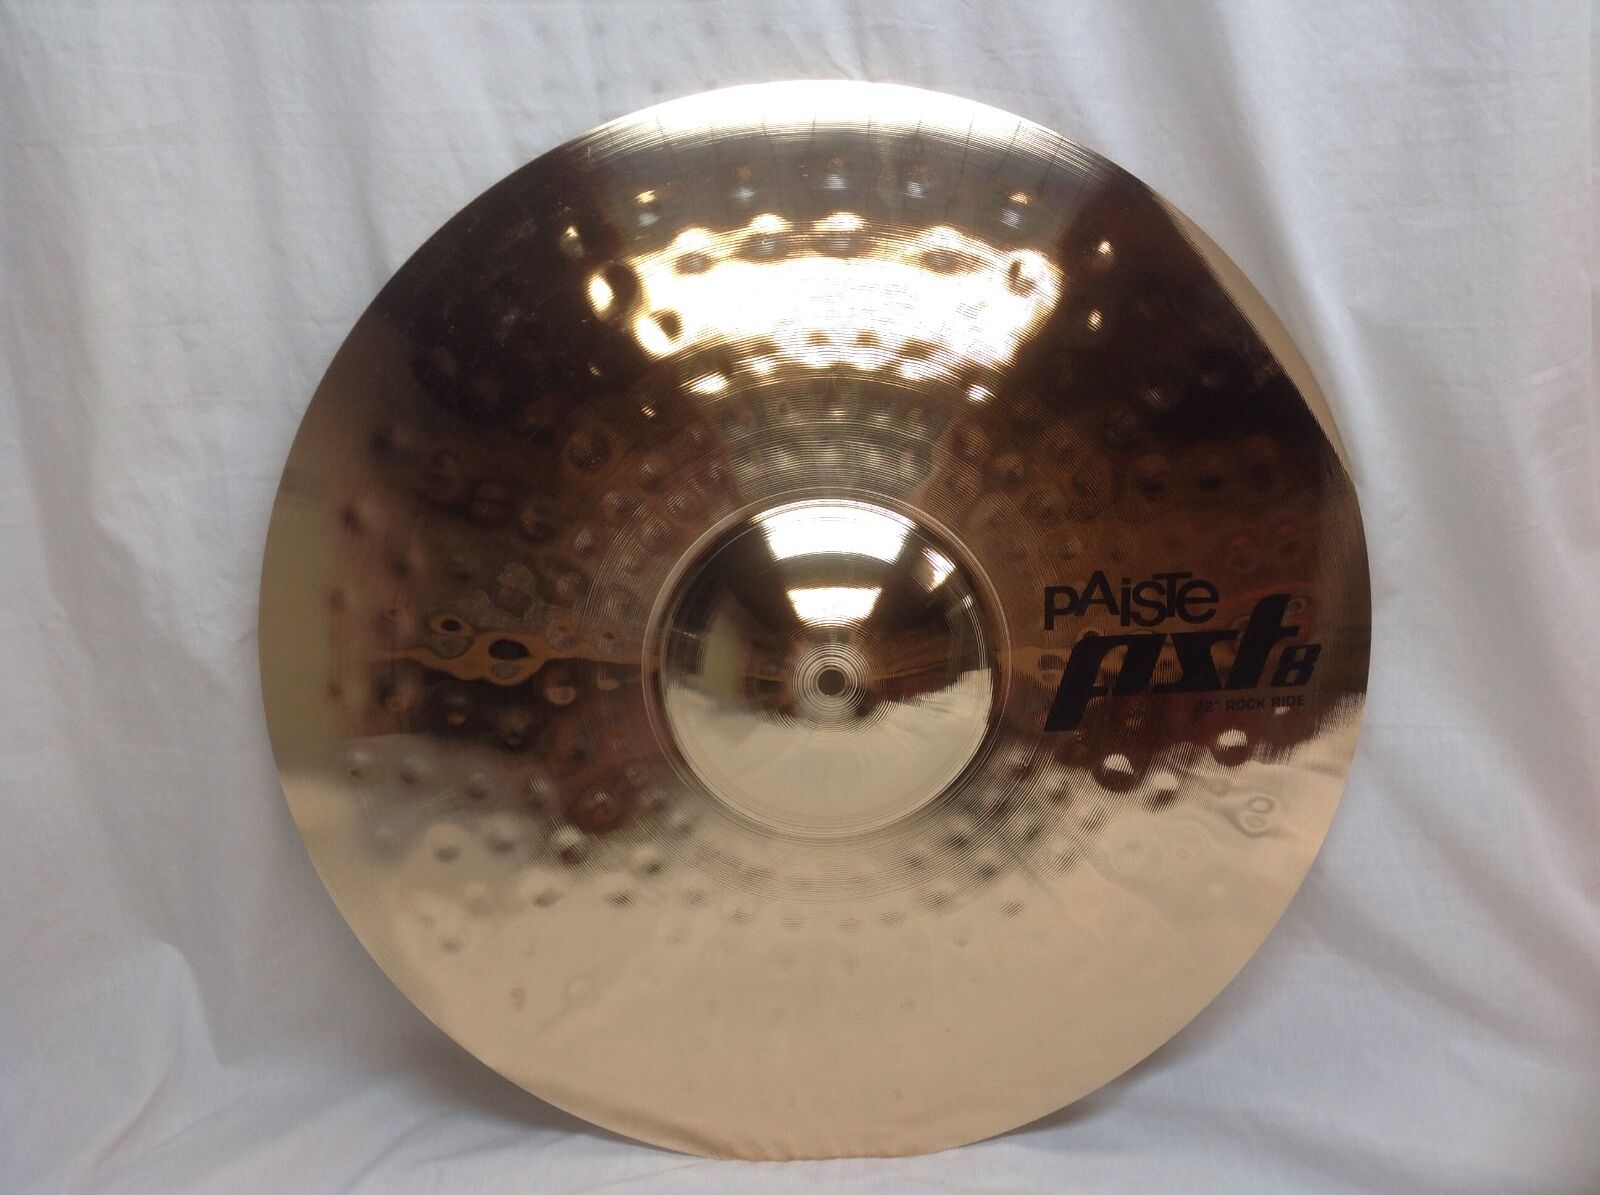 Paiste PST8 22  Reflector Rock Ride Cymbal Brand New